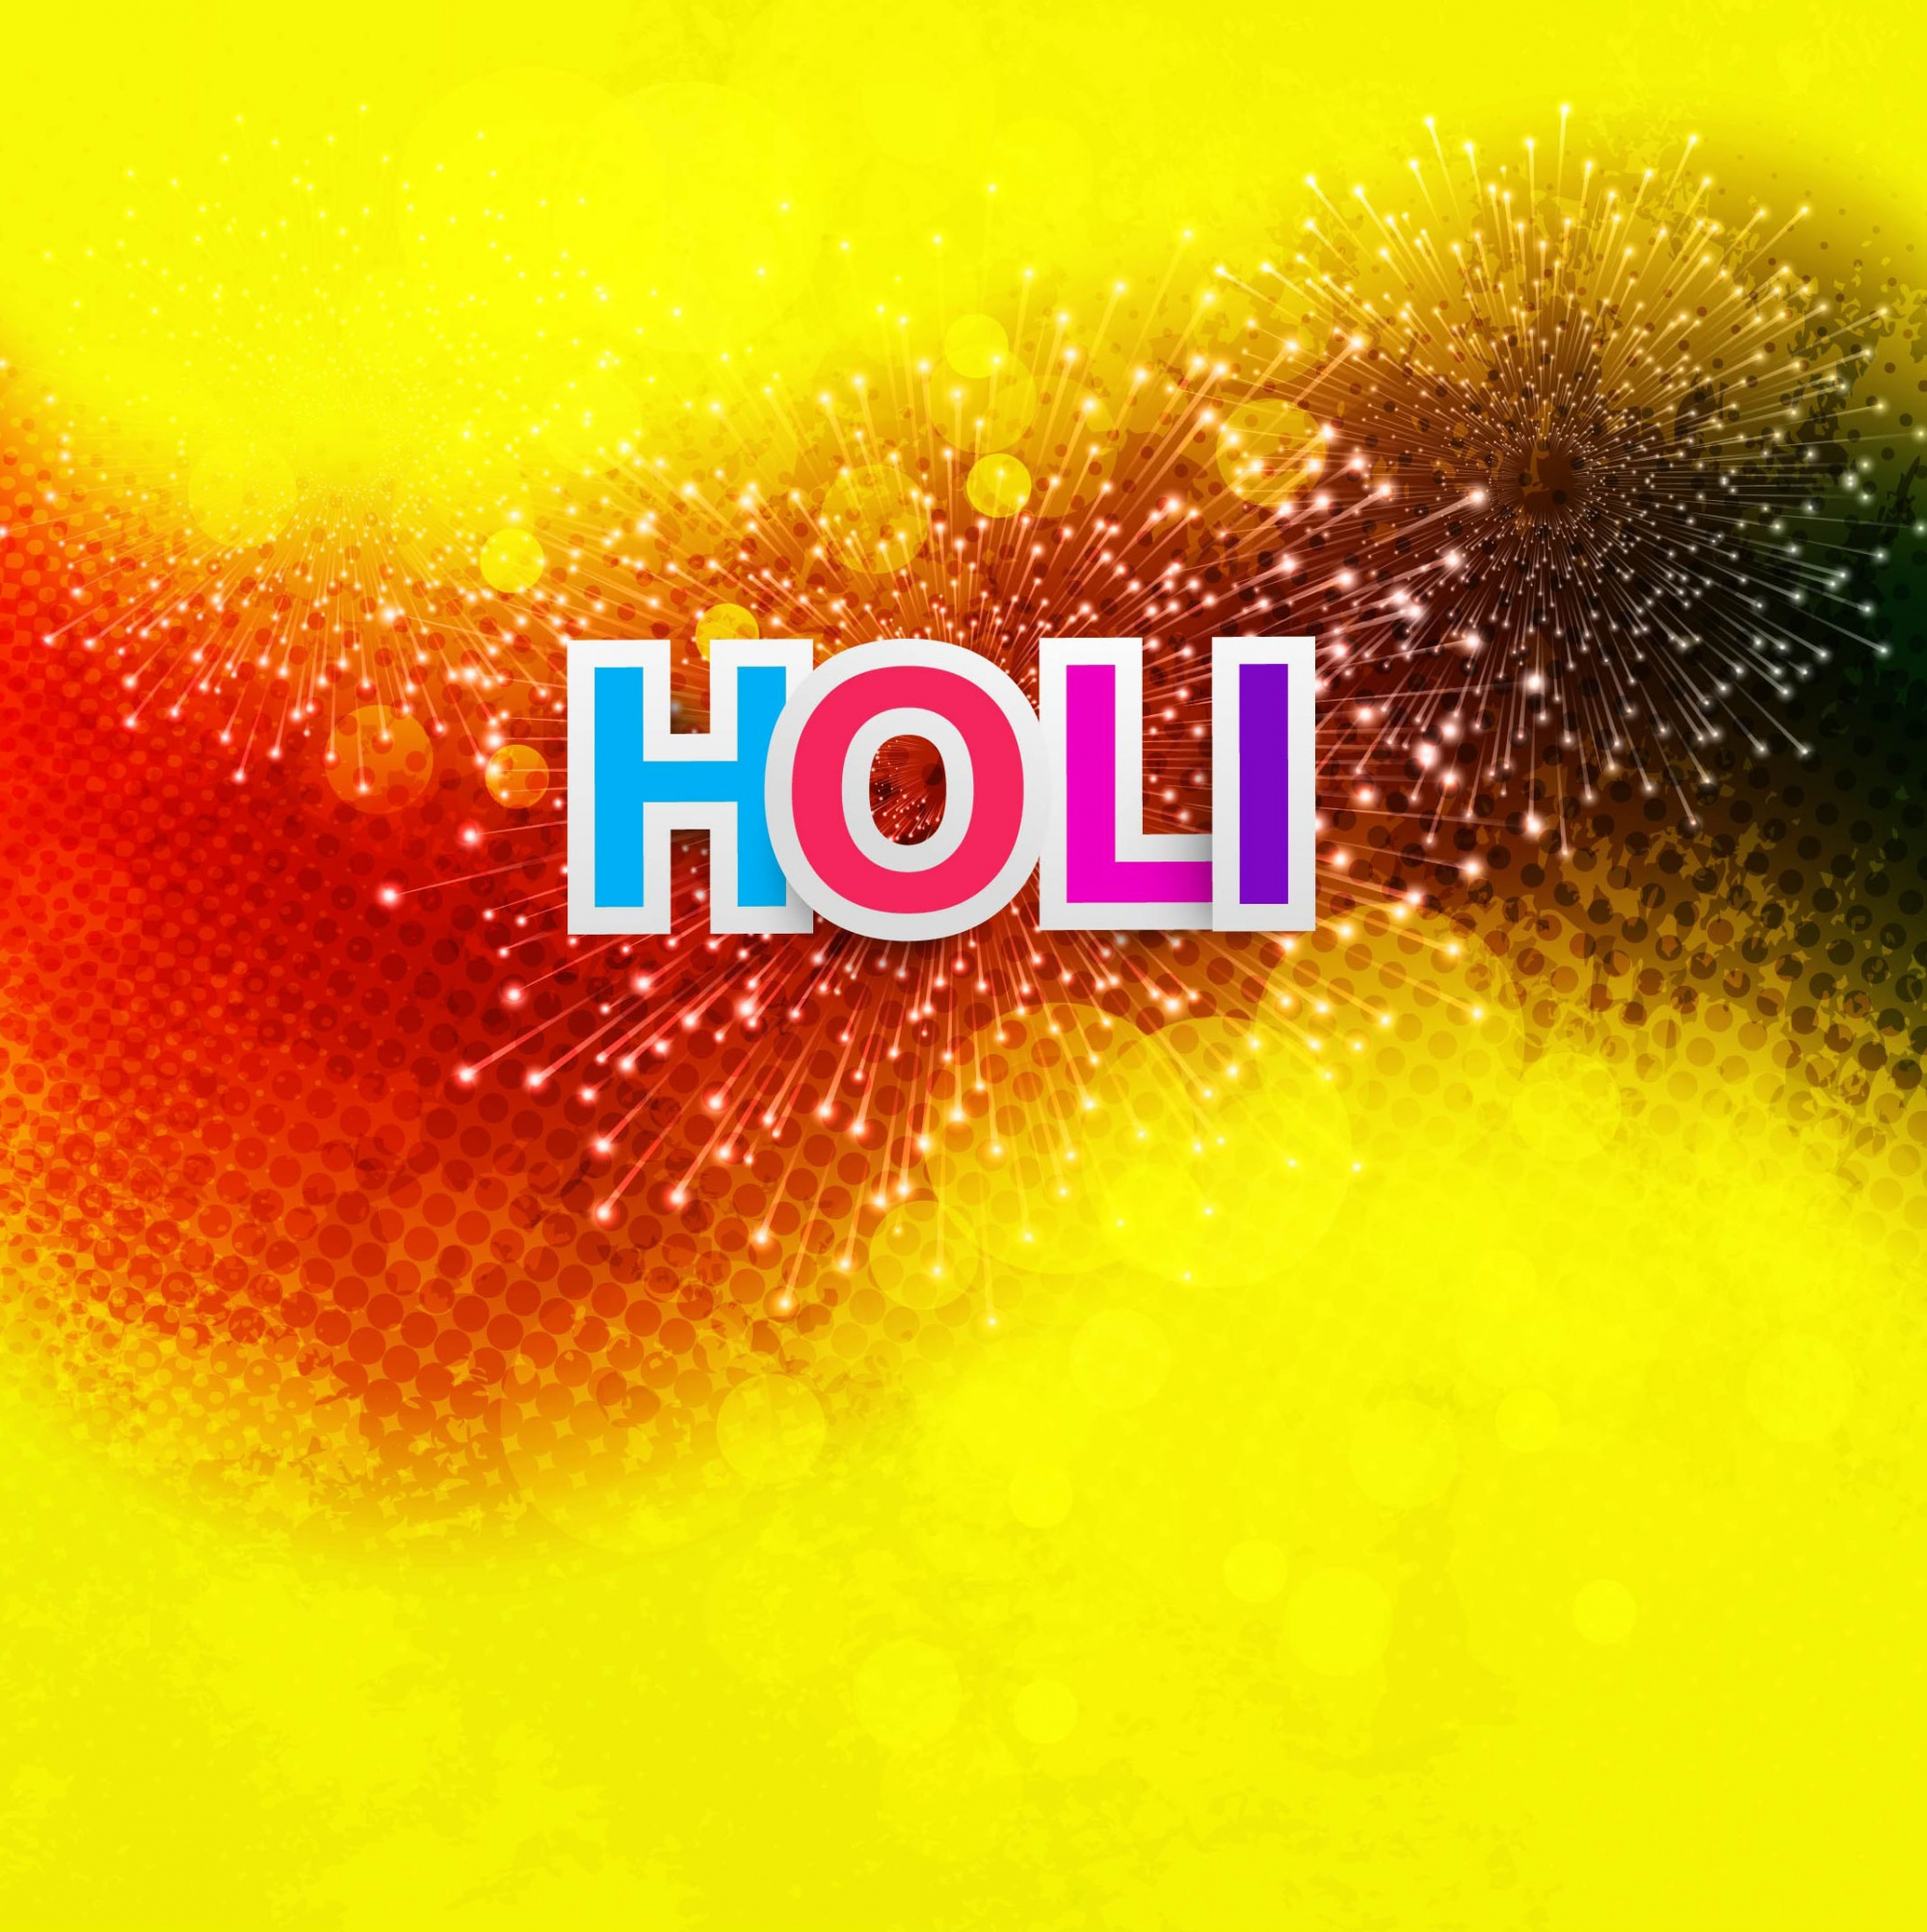 Yellow and red background for holi festival